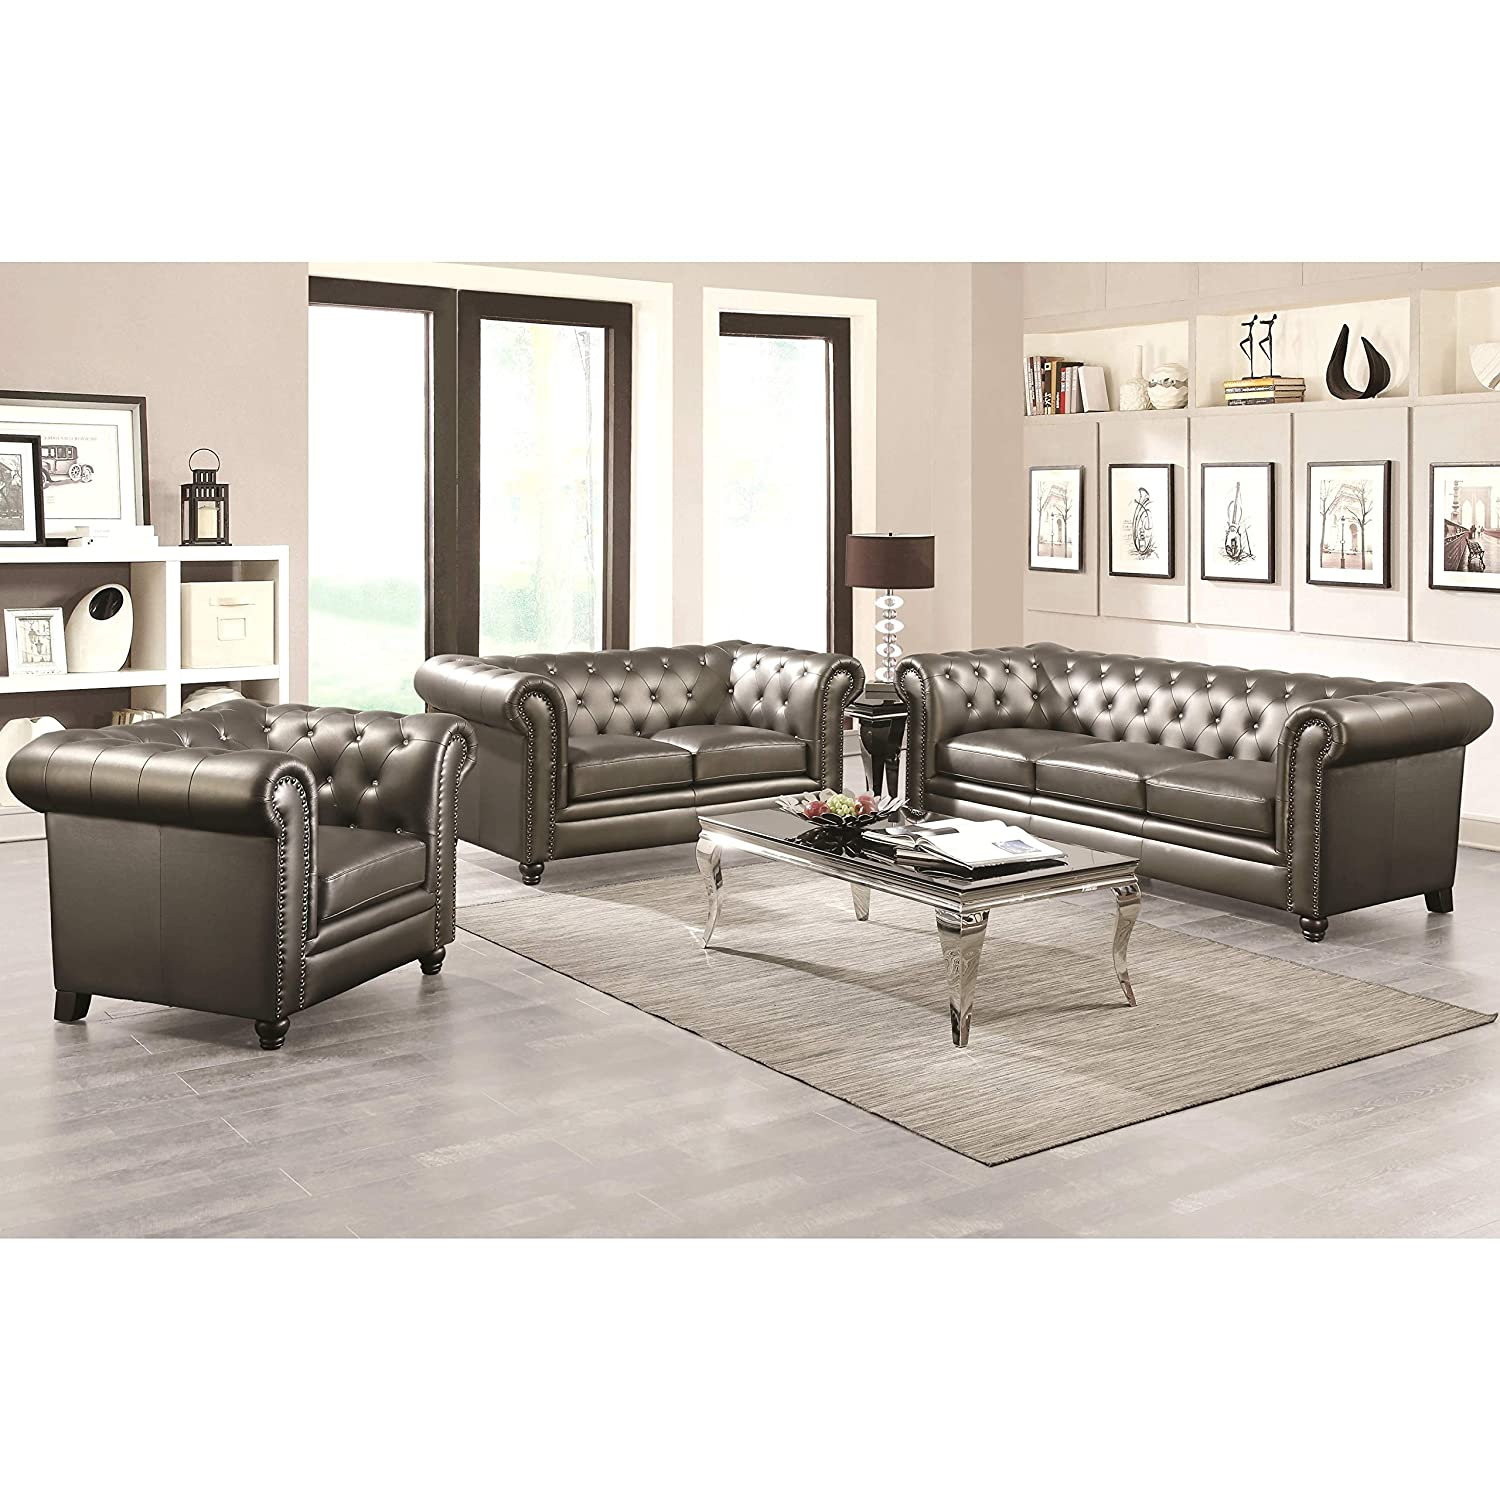 Amazon com a line furniture royal mid century living room collection with crystal button tufting design and nailhead trim grey 1 sofa 1 loveseat 1 chair